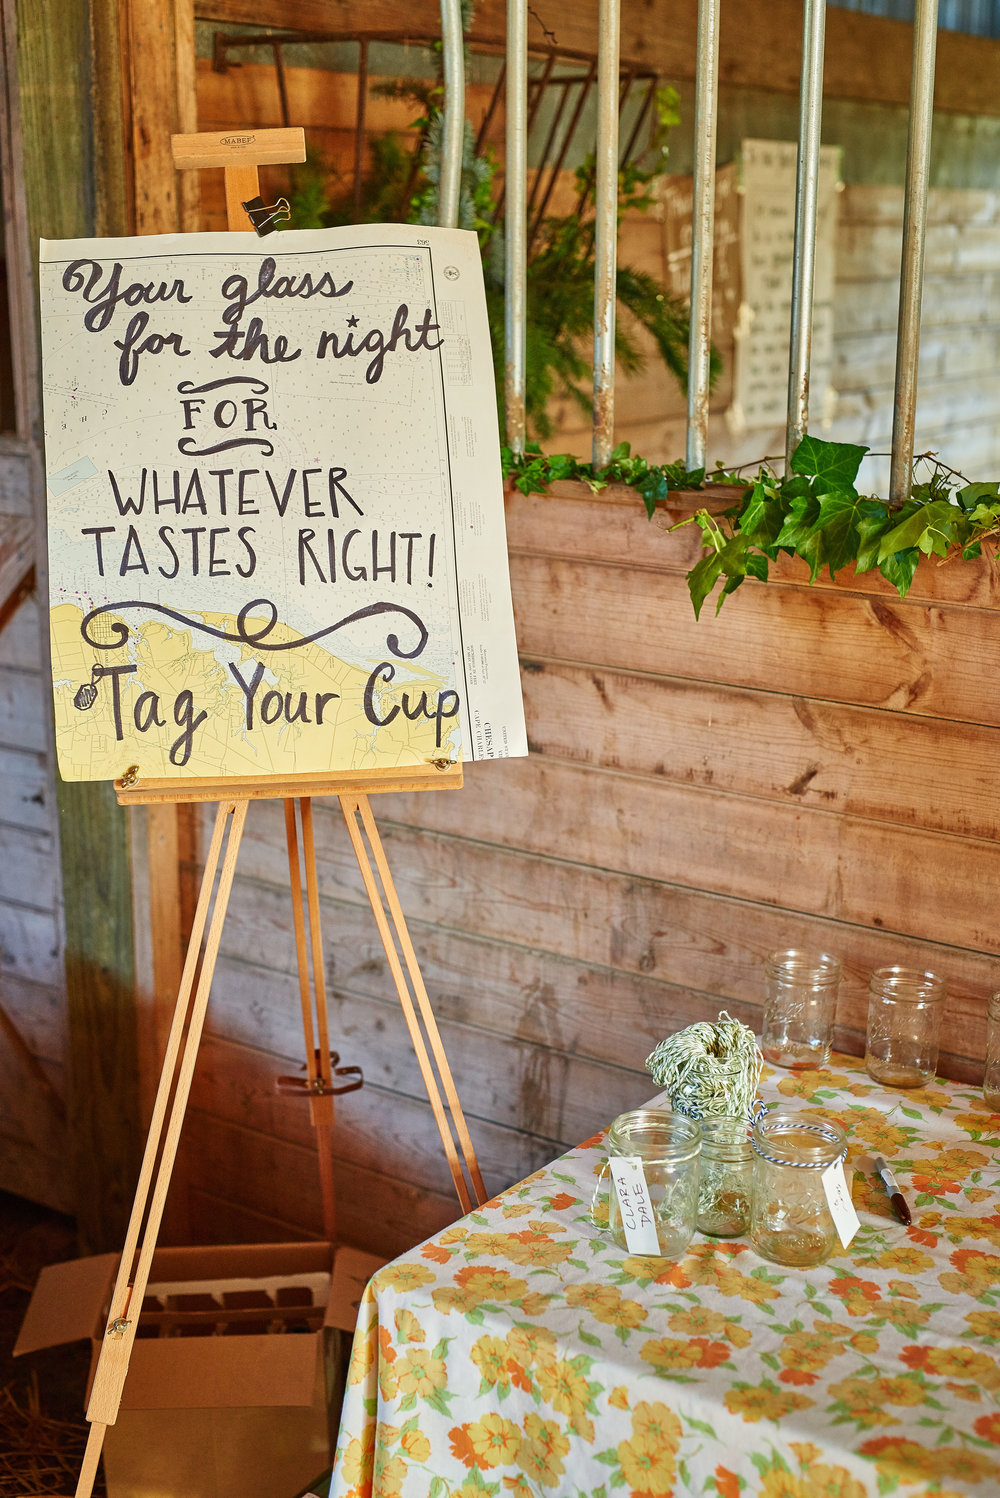 your glass for the night for whatever feels right farm wedding sign at plum nelli.jpg